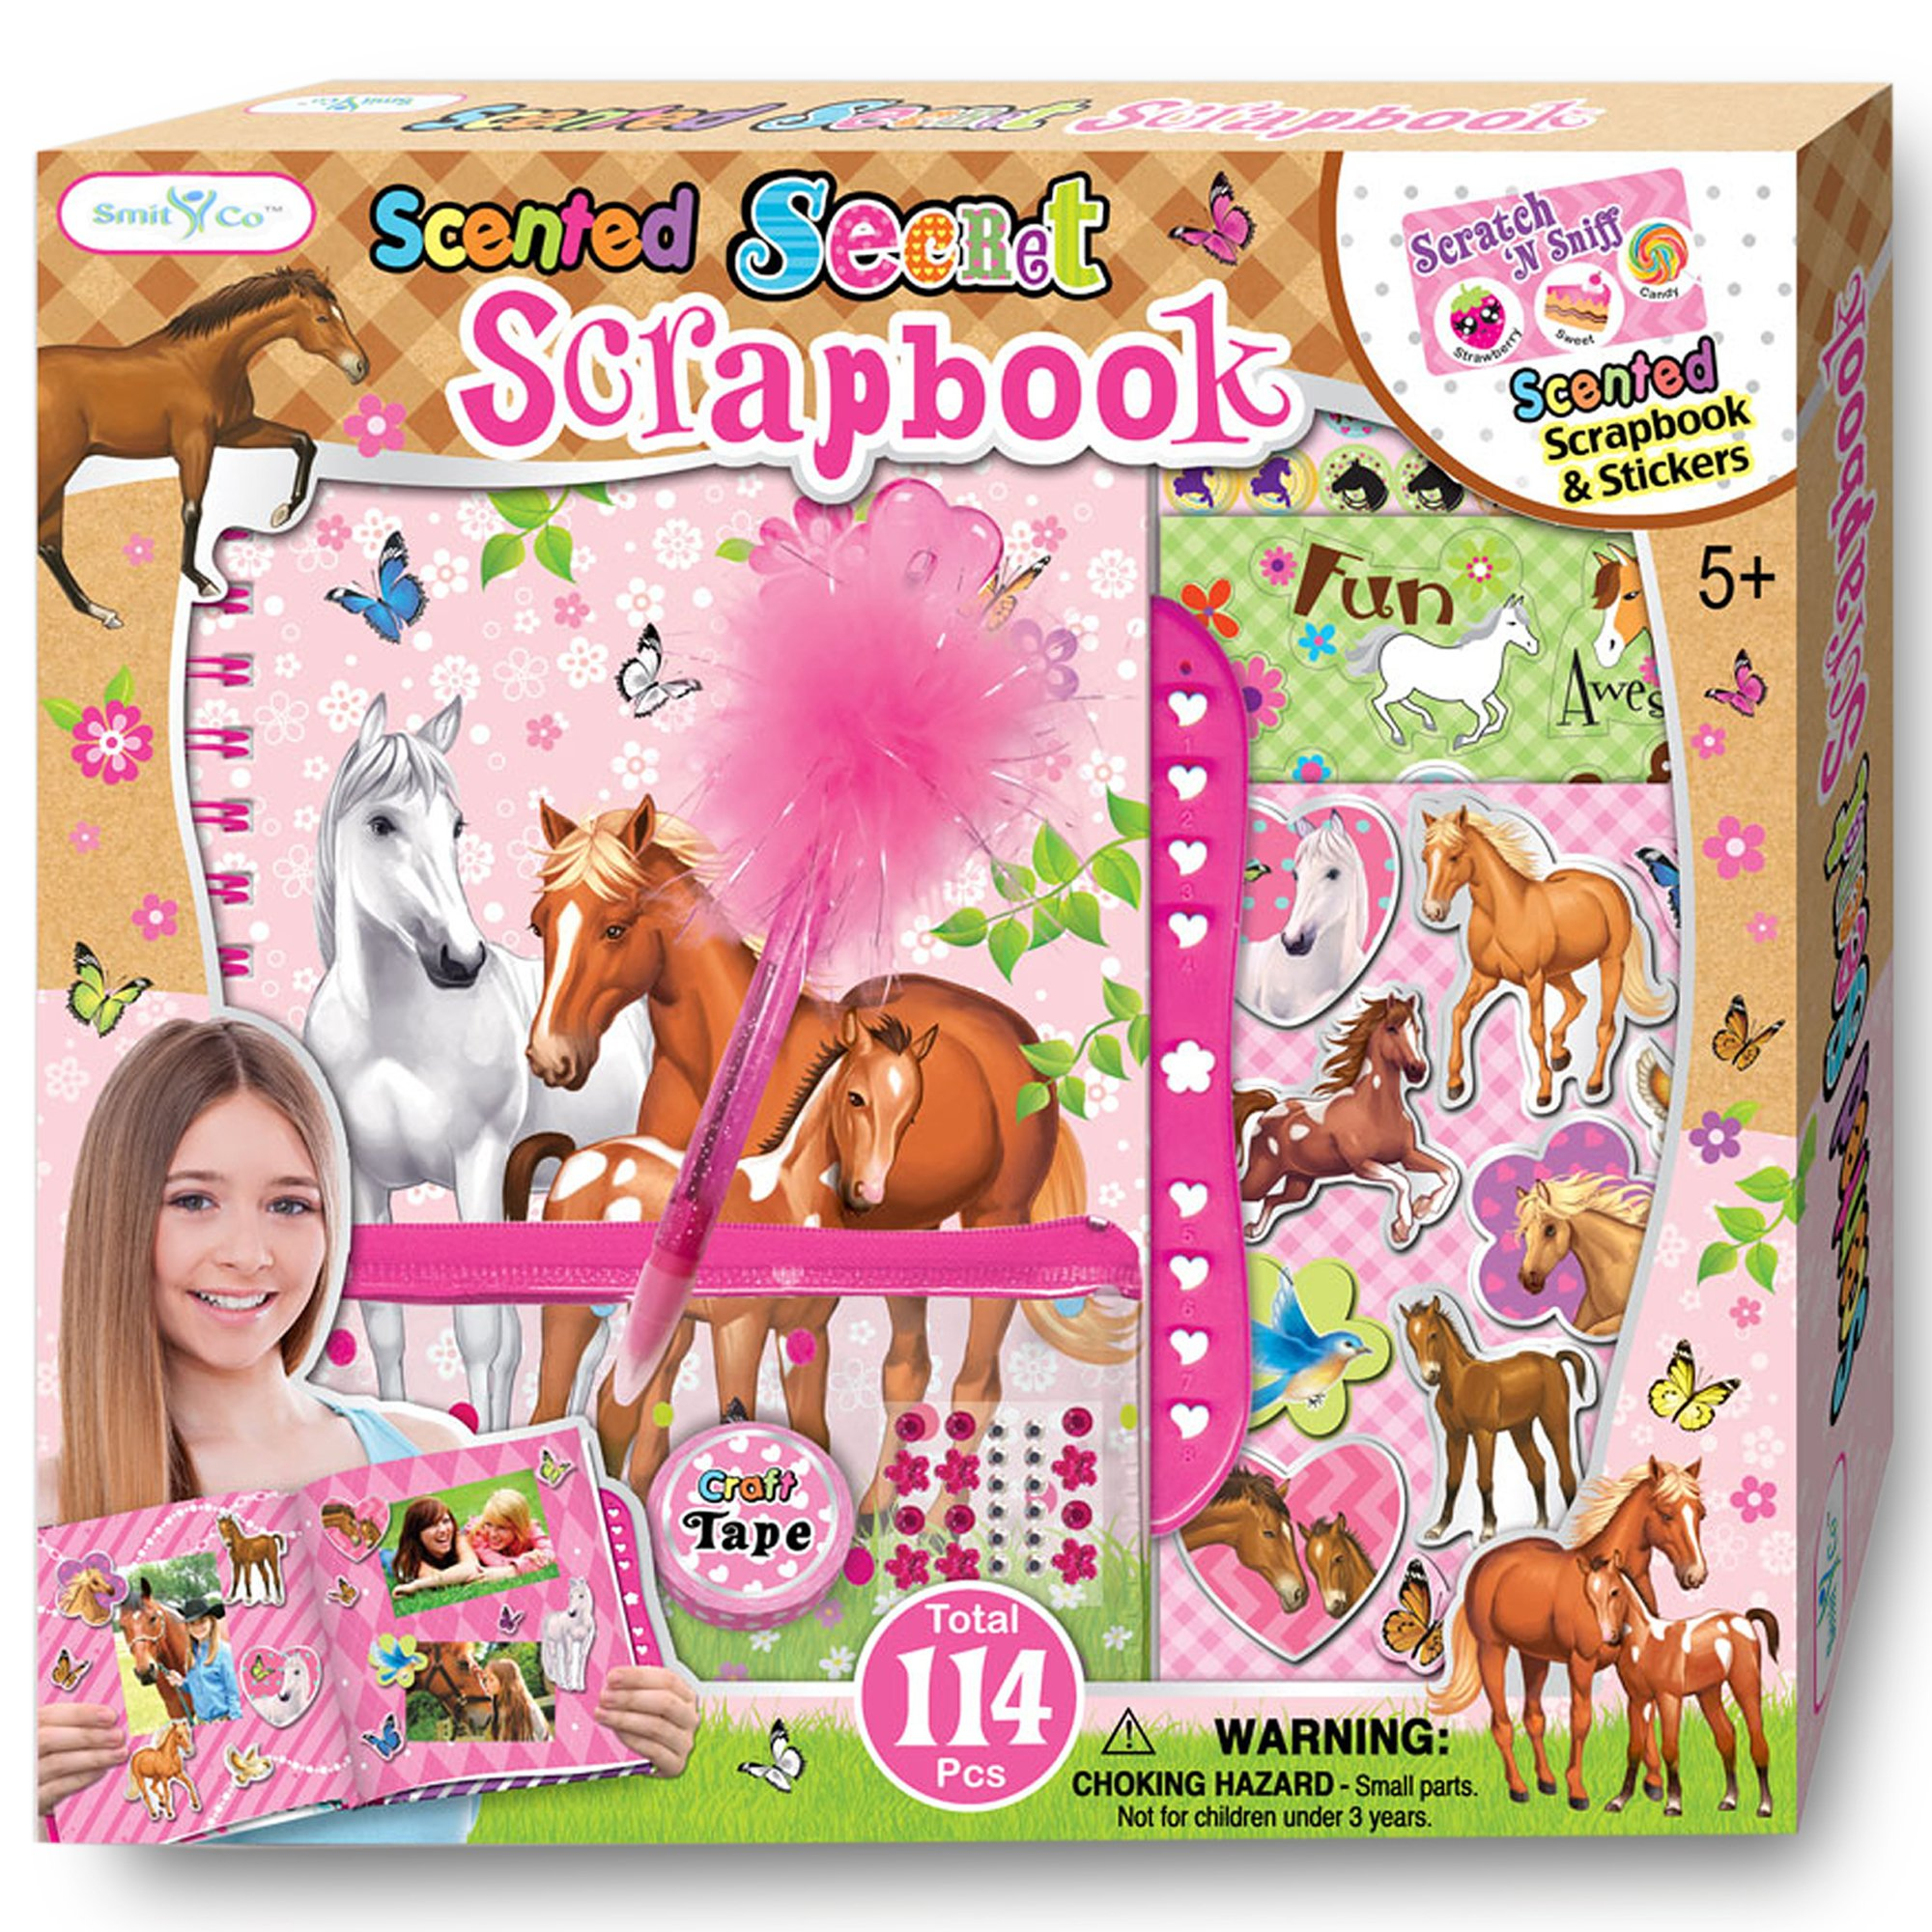 SMITCO Scrapbook for Girls - Pony or Horse Scrapbooking Arts and Crafts Gifts Sets for Kids 5 Years and Older - Includes Album with Passcode Lock, 3D Stickers, Jewels and More for Hours of Fun